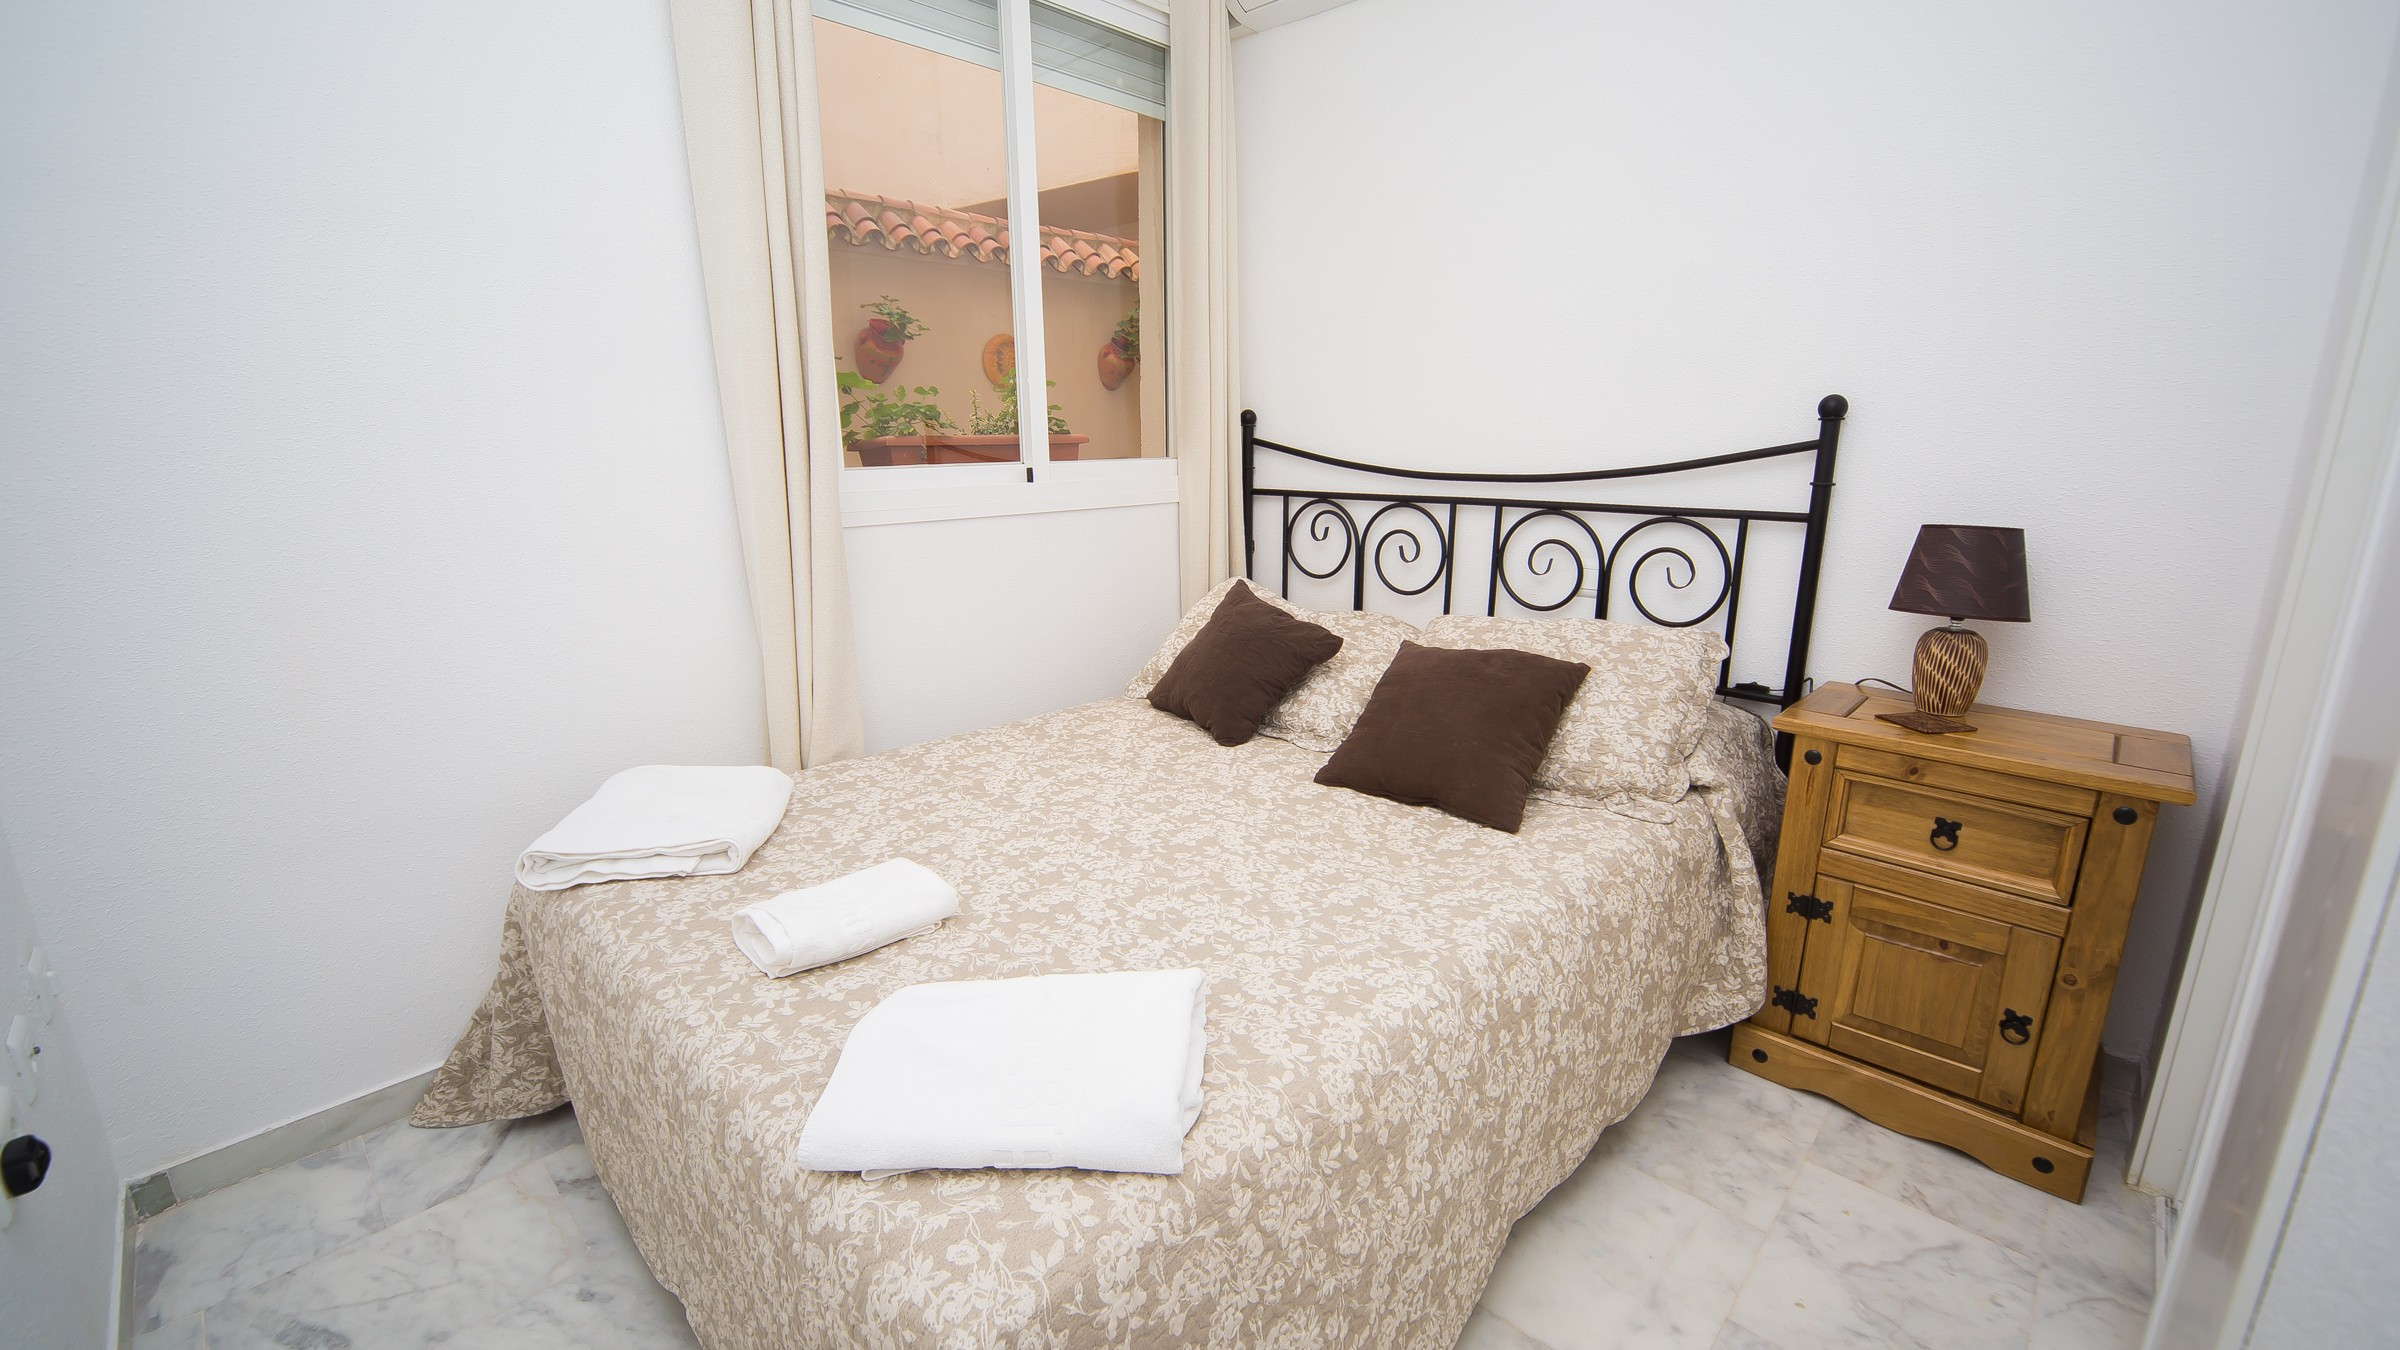 apartments in casares hc pensamiento 0d